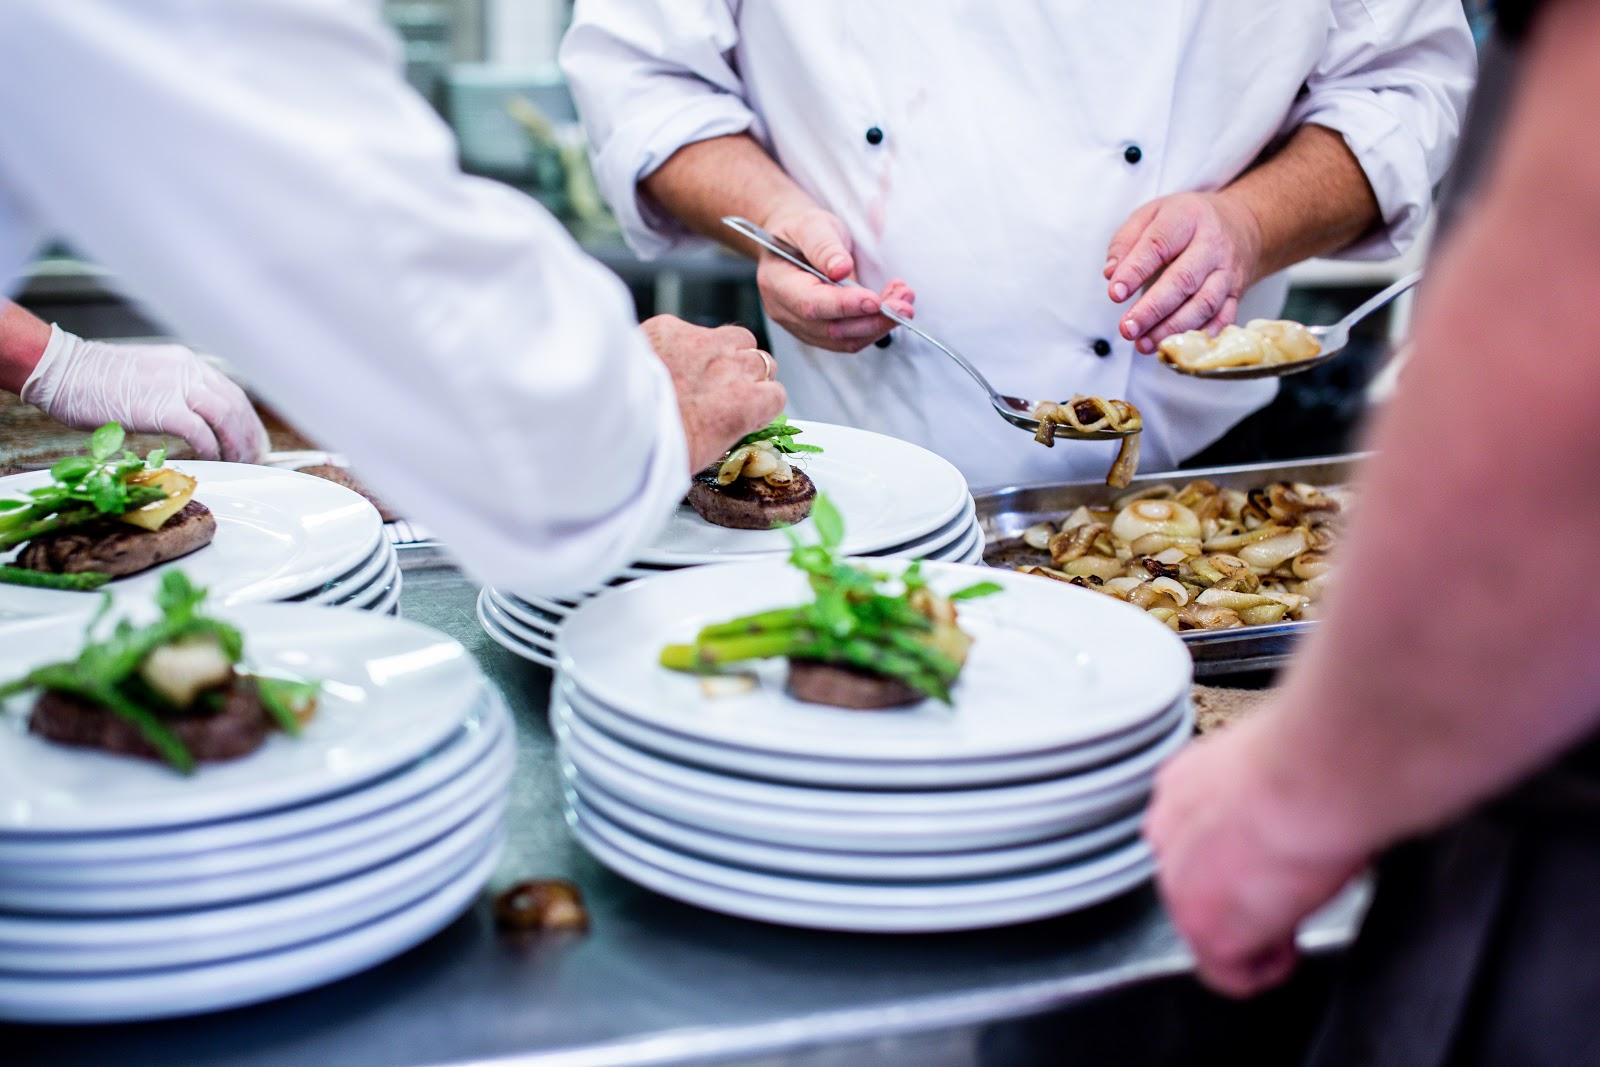 Chefs add food to white plates